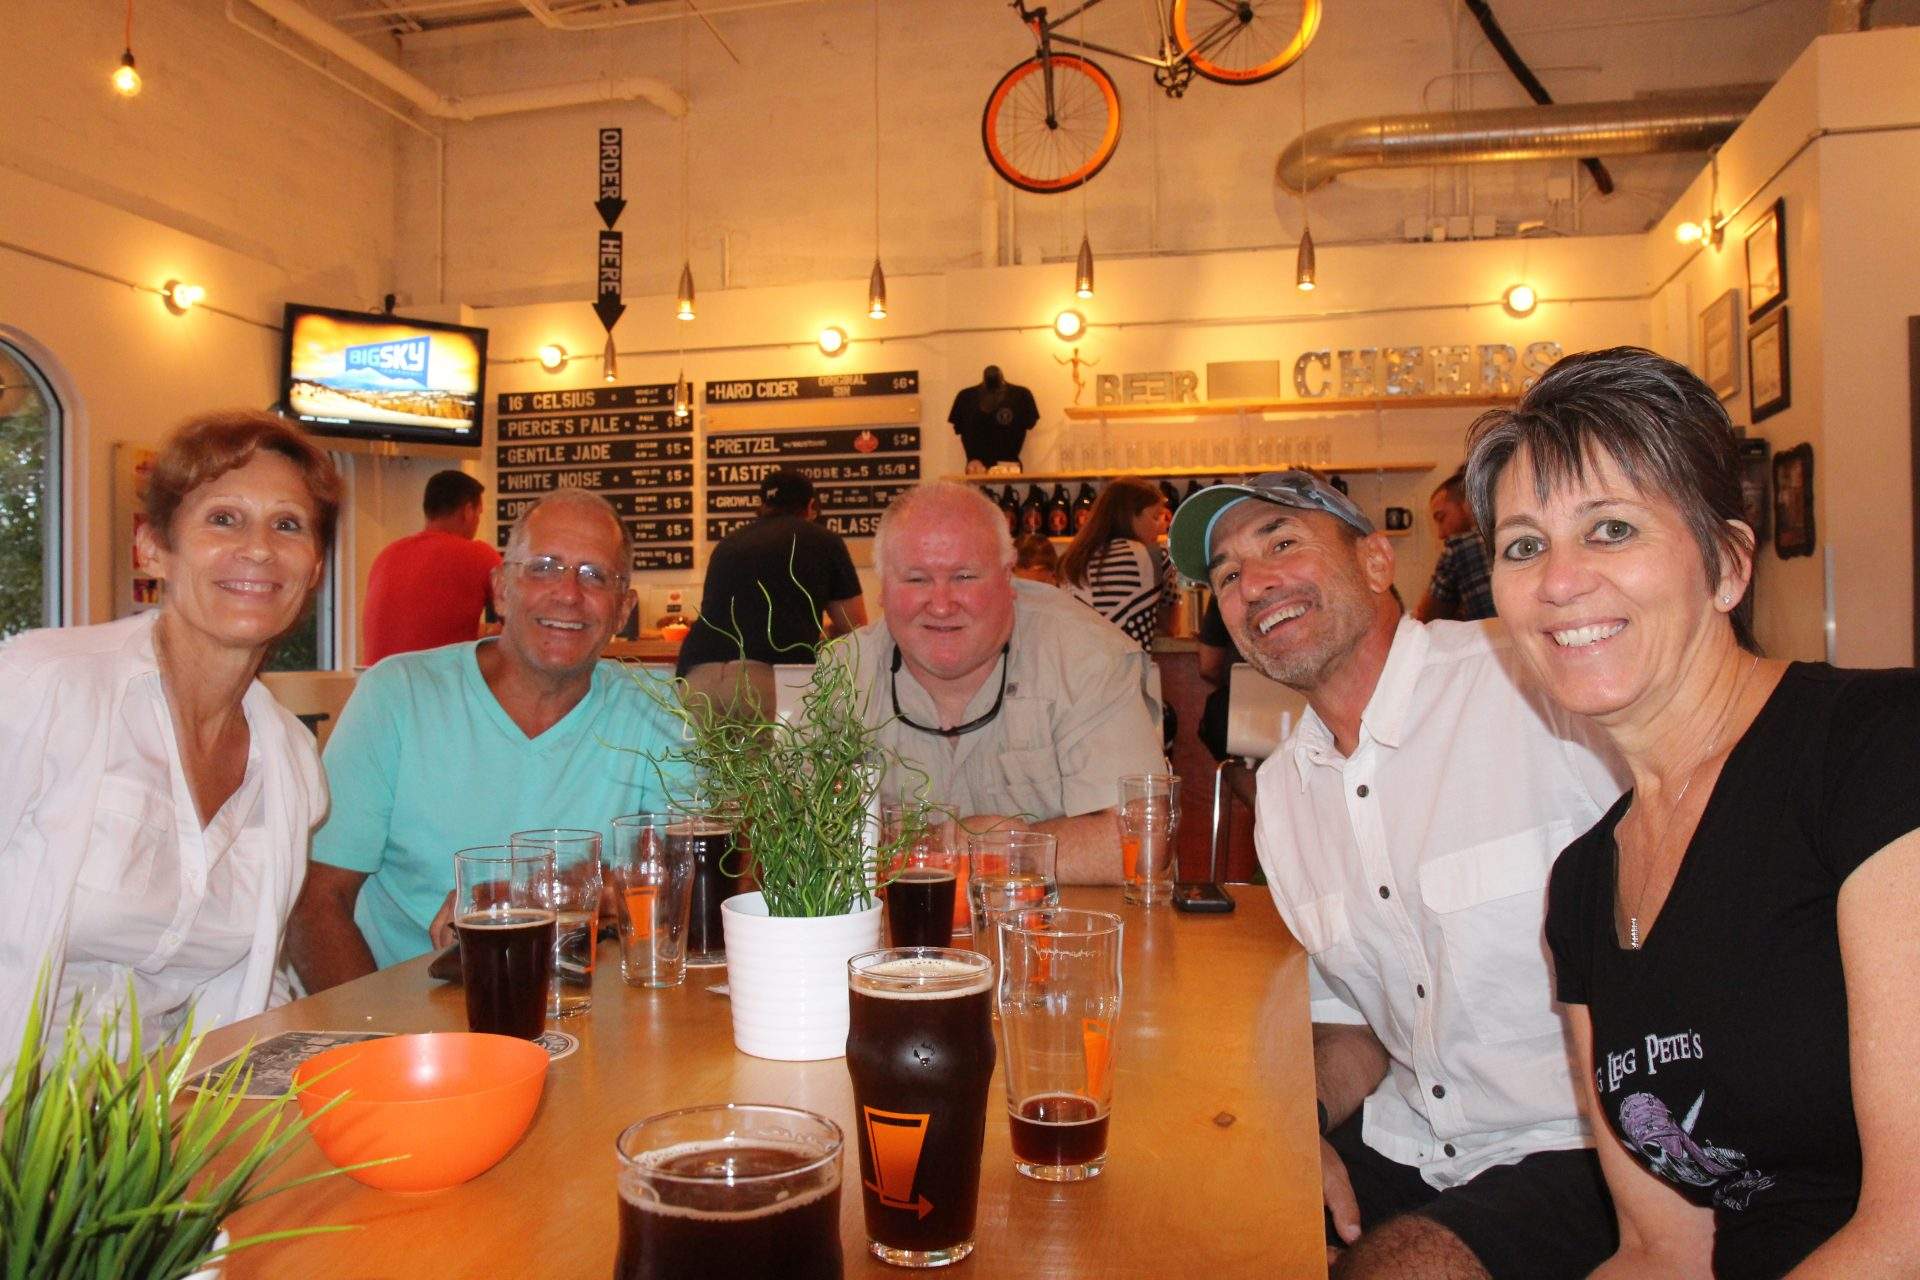 Fun night at the brewery...August 2015